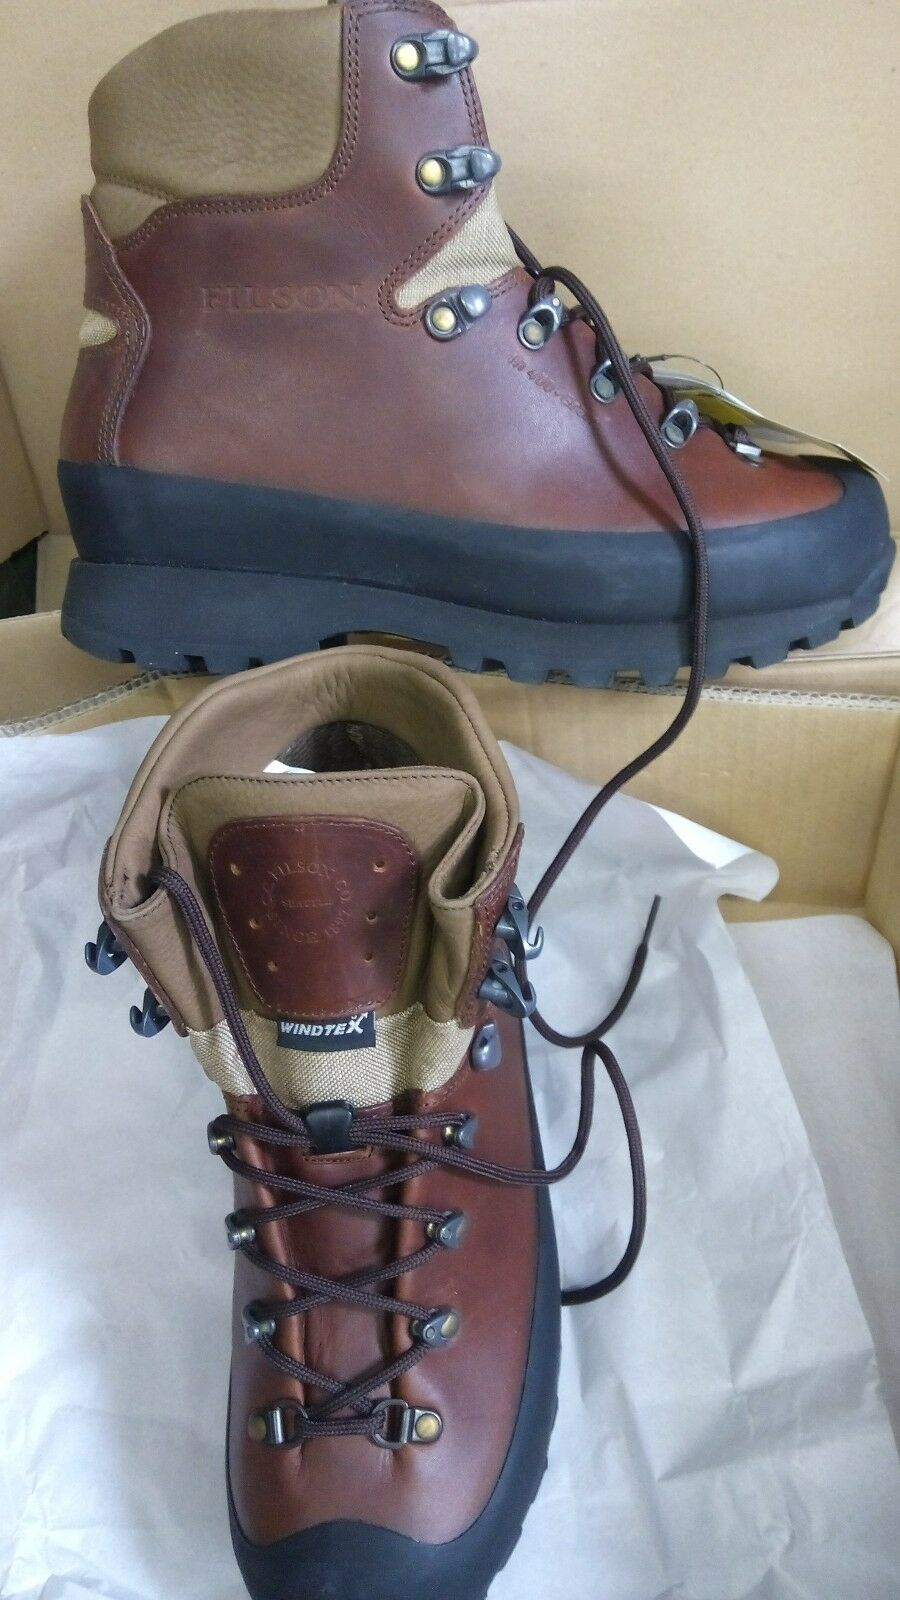 ANFIBI SCARPONI SCARPONCINI - FILSON - BOOTS BOOTS BOOTS  TG usa 9 Mountaineer boot 43 8908cf